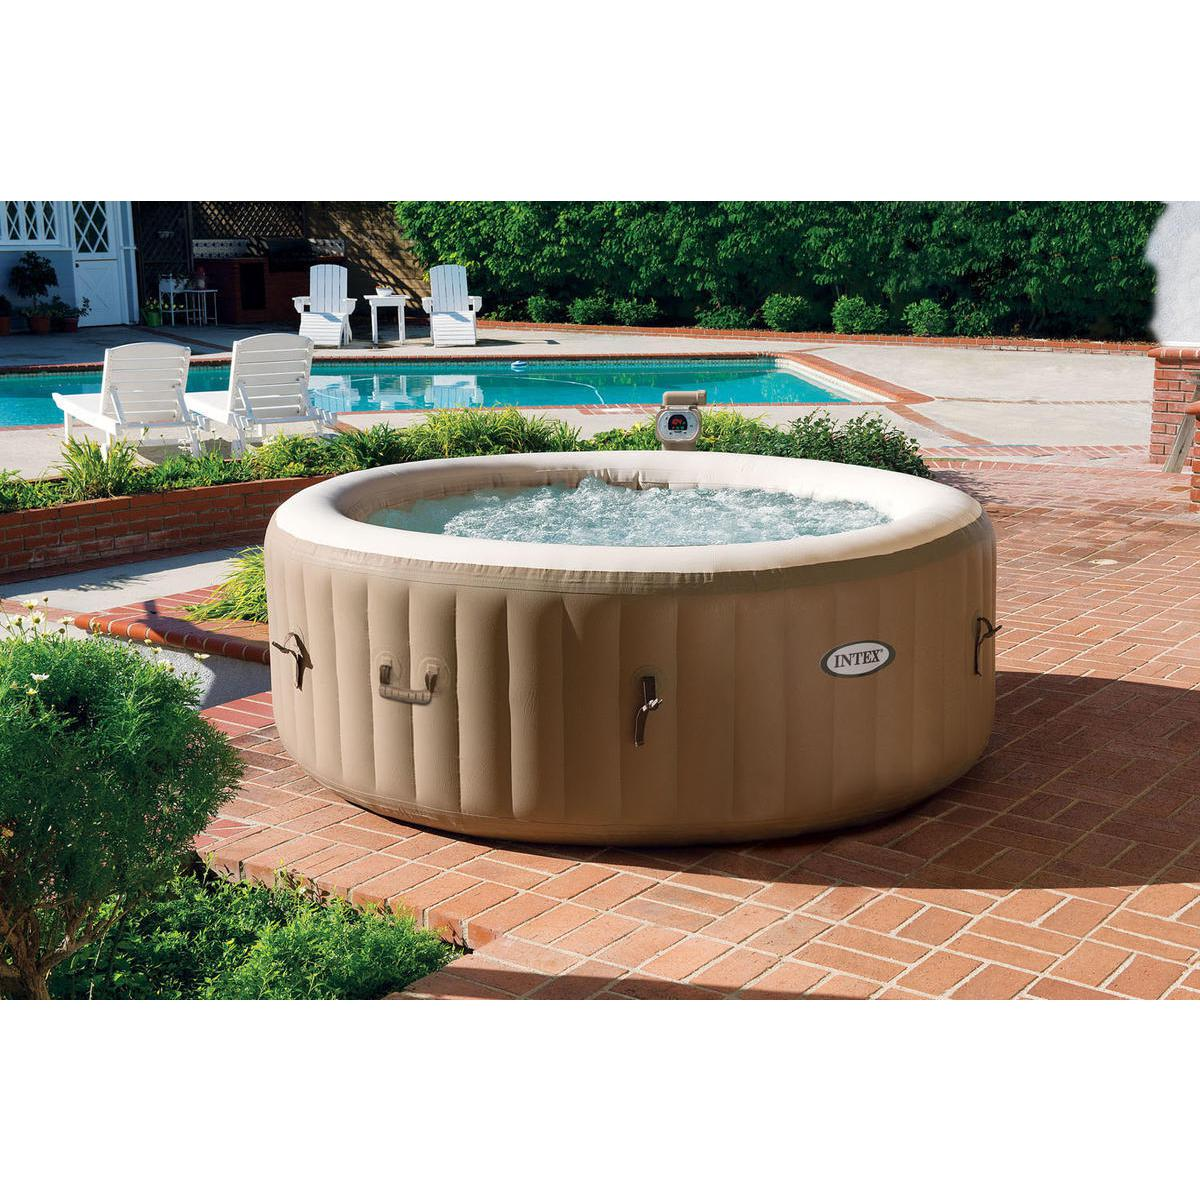 Intex Piscina Idromassaggio Spa Bubble Therapy 196x71cm 120 Getti